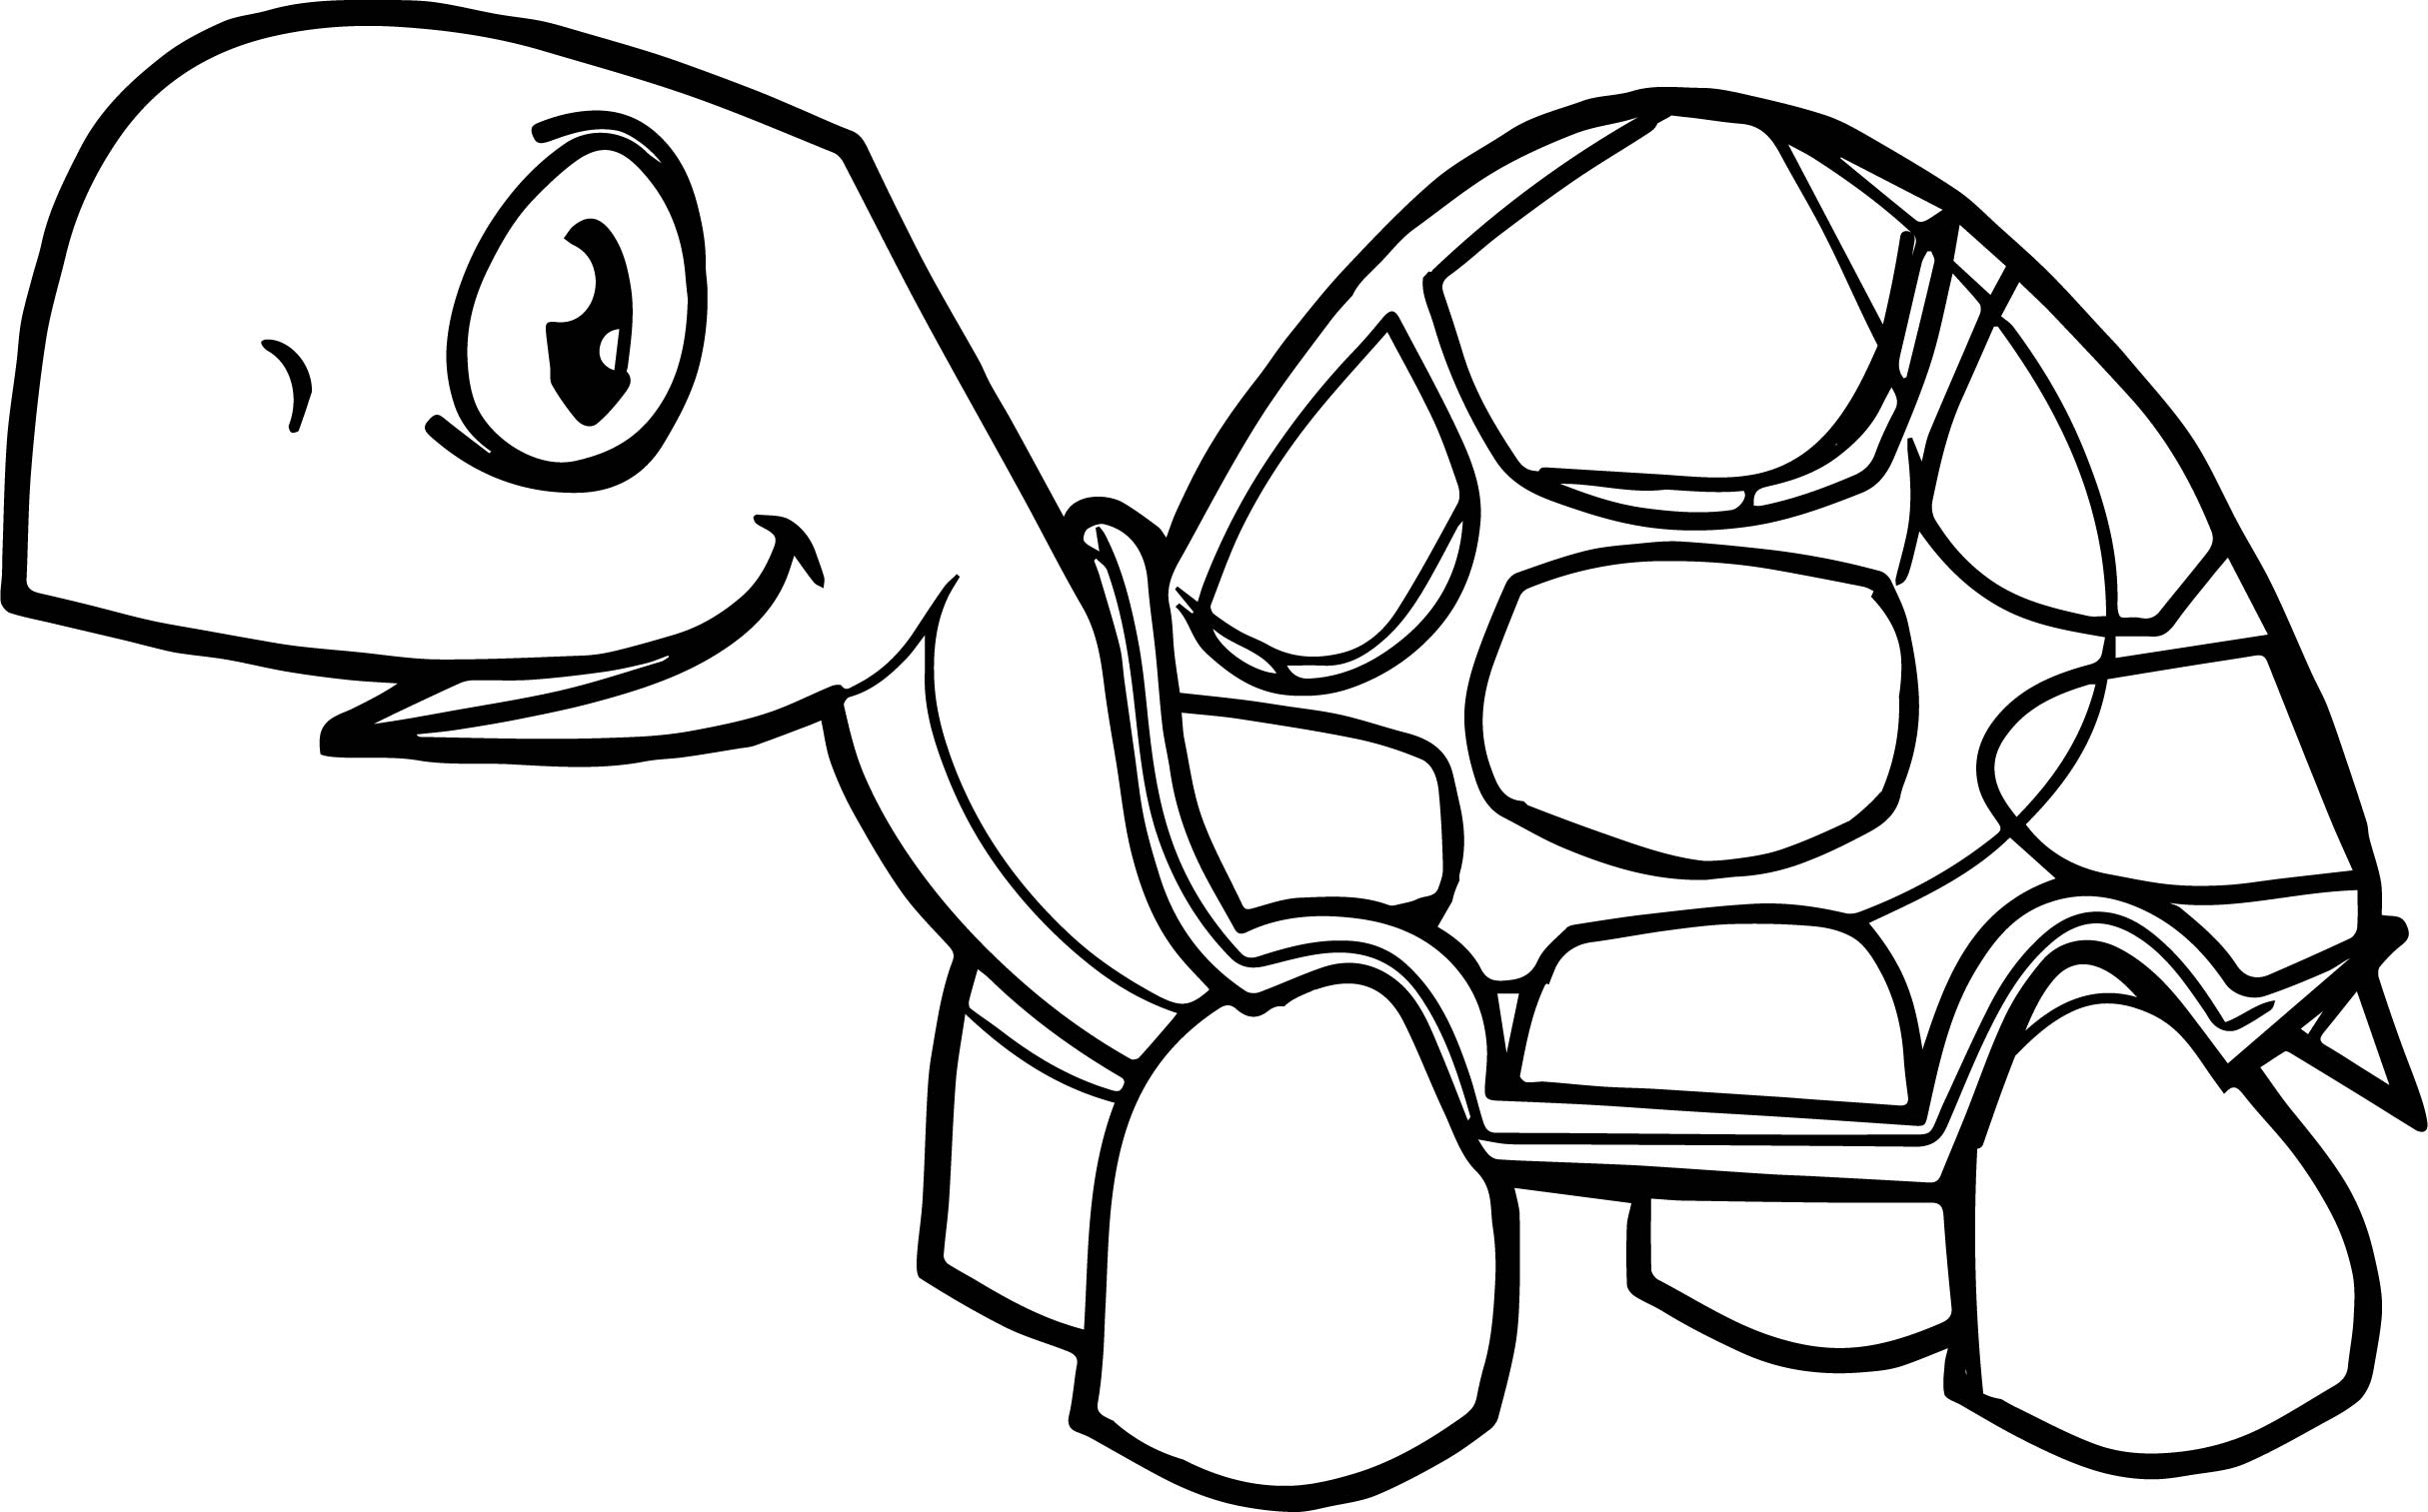 Tortoise Turtle Smile Coloring Page